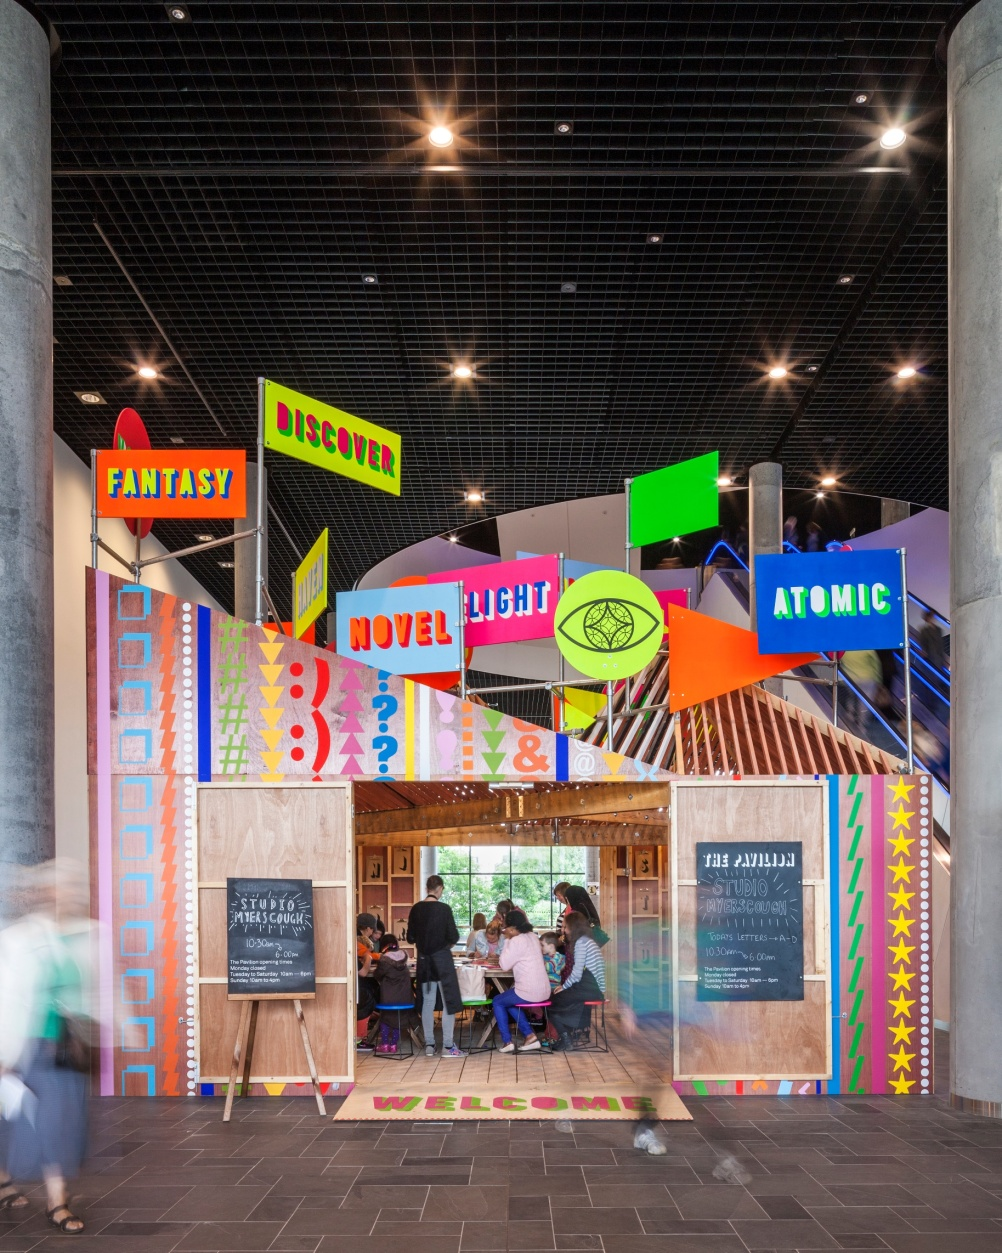 Morag Myerscough's Pavilion at the Library of Birmingham